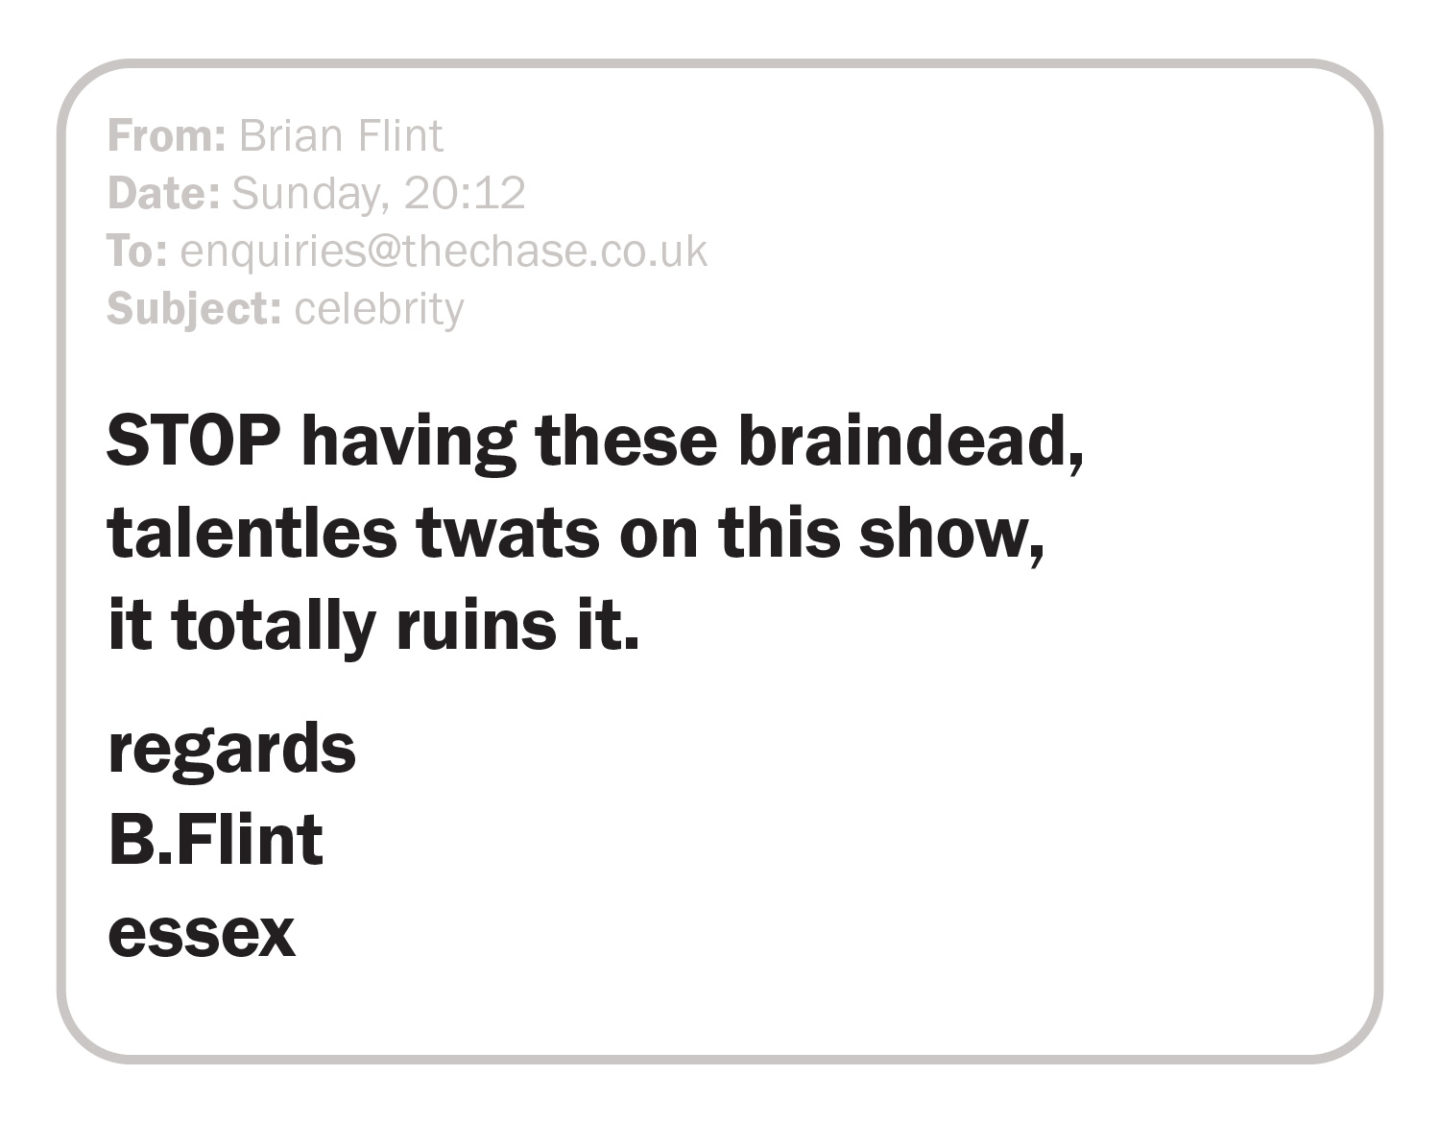 STOP having these braindead, talentles twats on this show, it totally ruins it. regards B.Flint essex